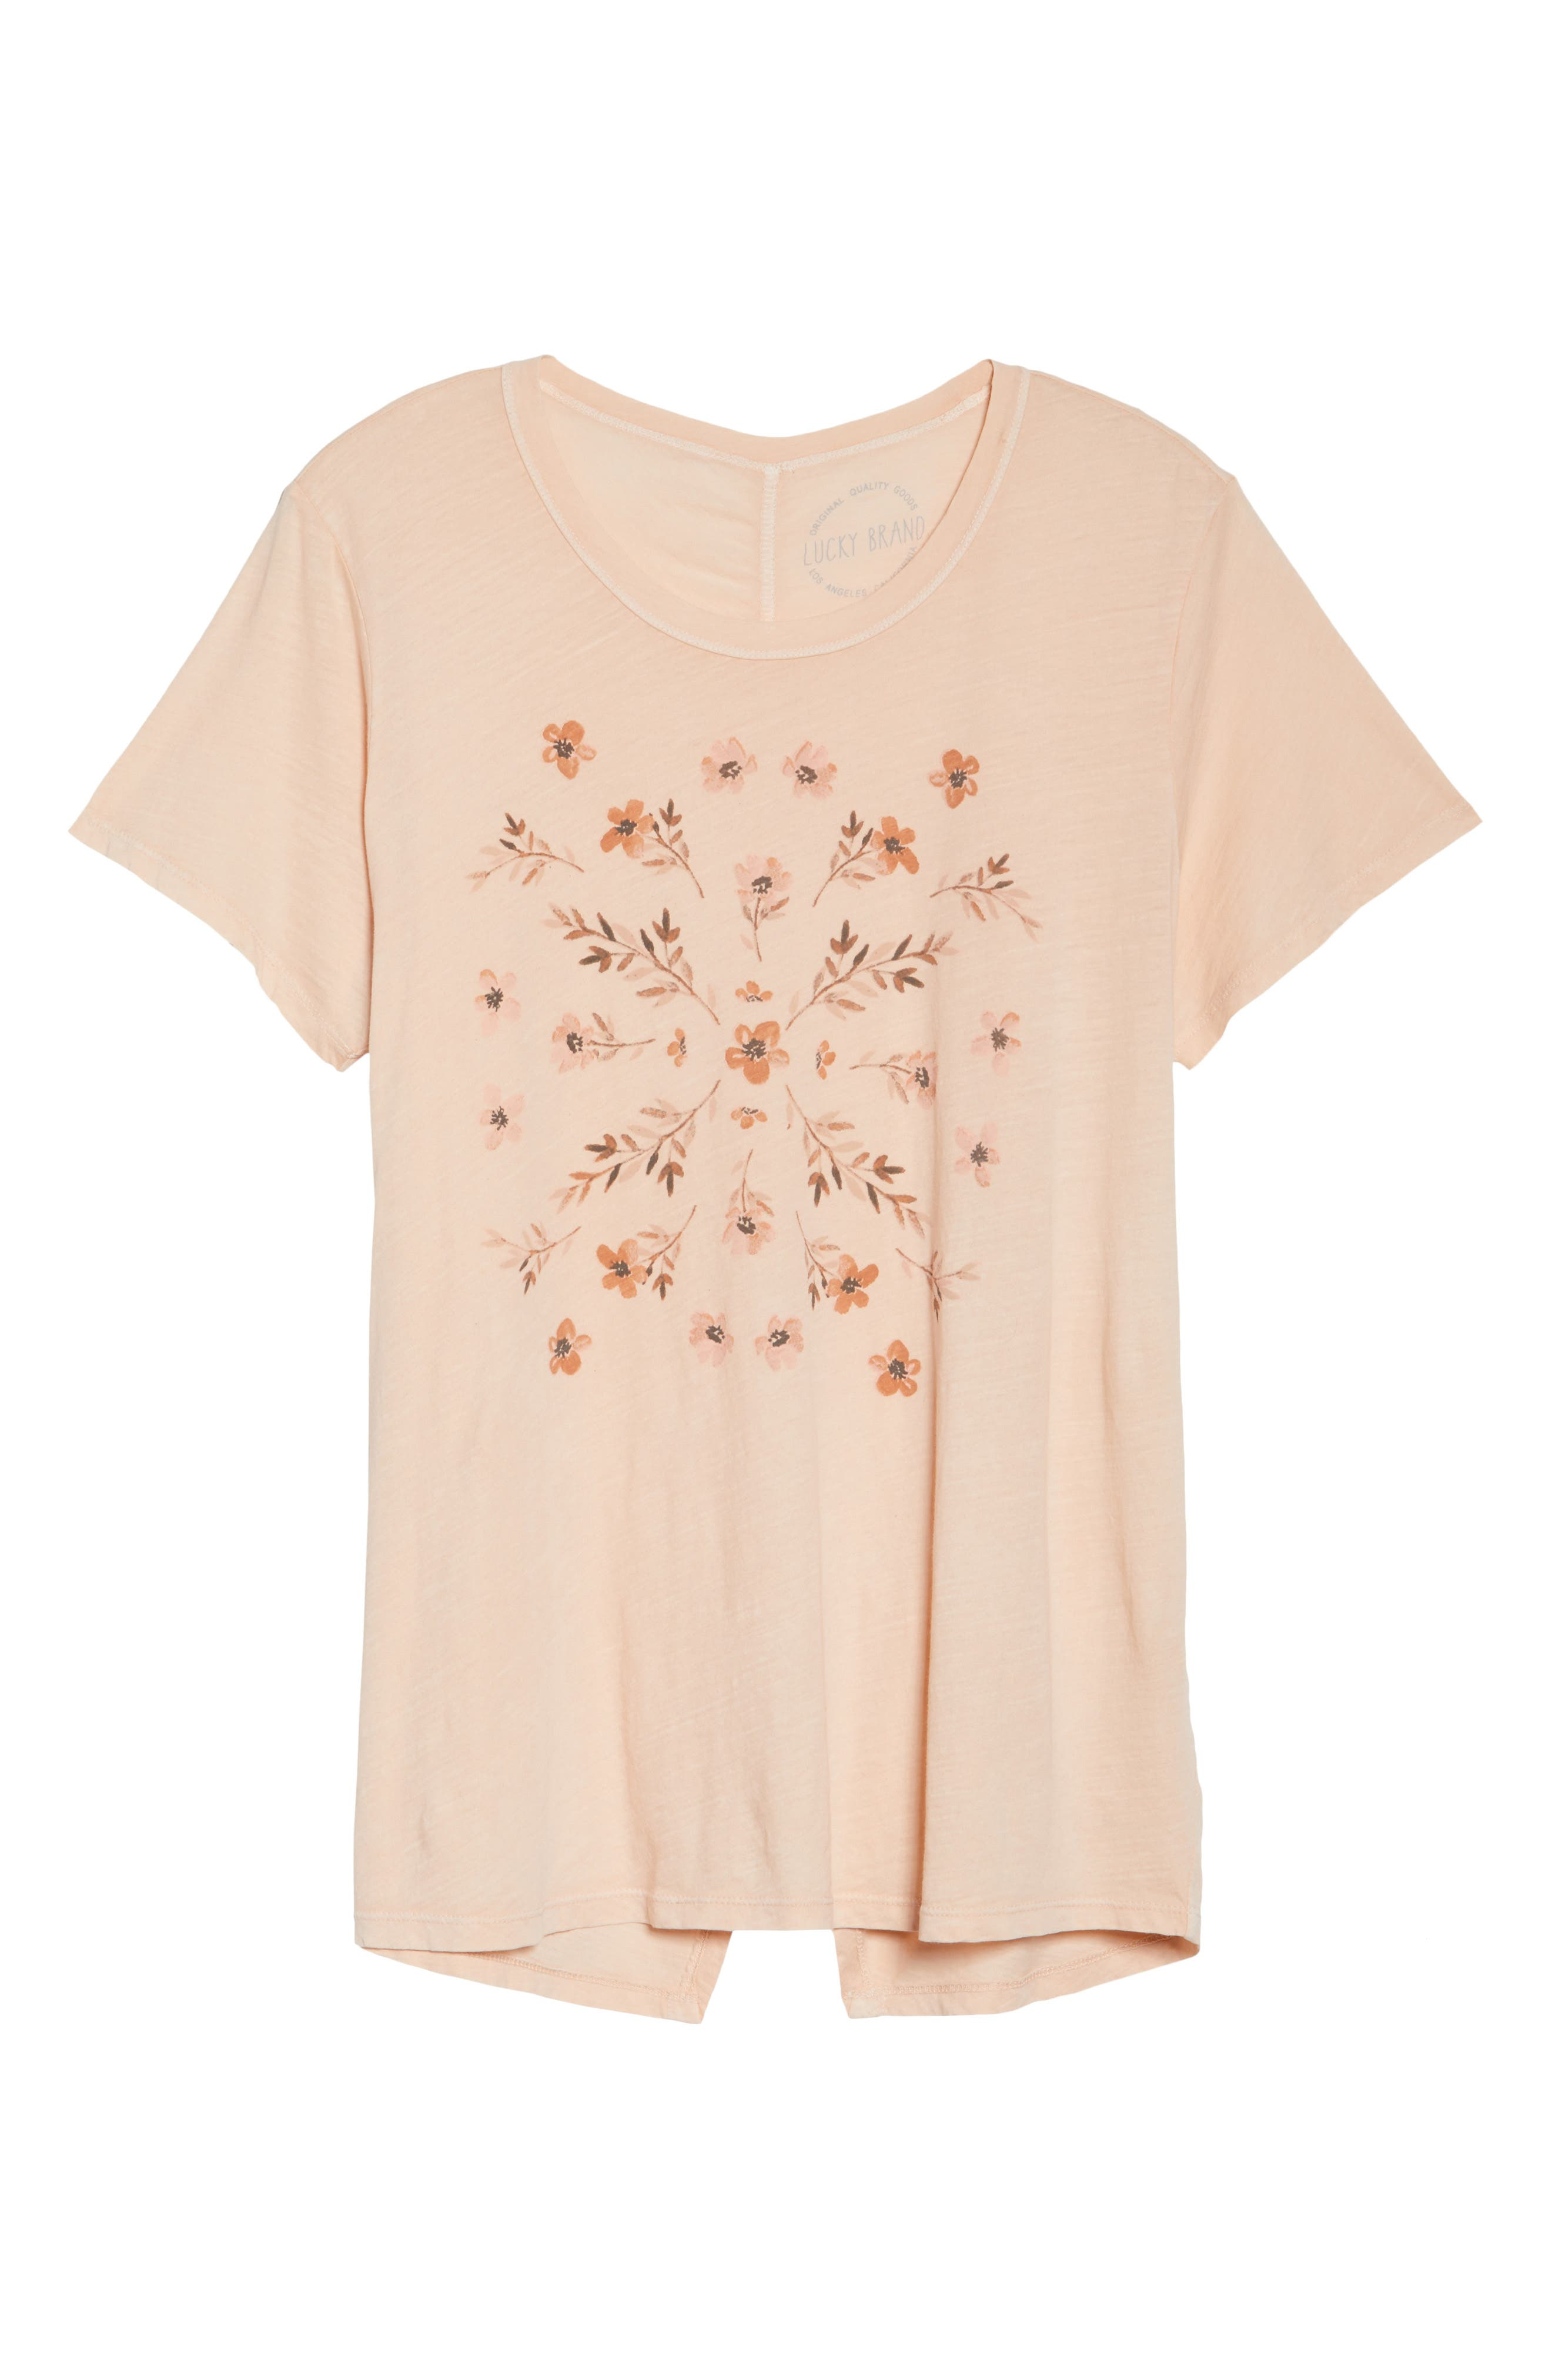 Stamped Flowers Tee,                             Alternate thumbnail 6, color,                             Shell